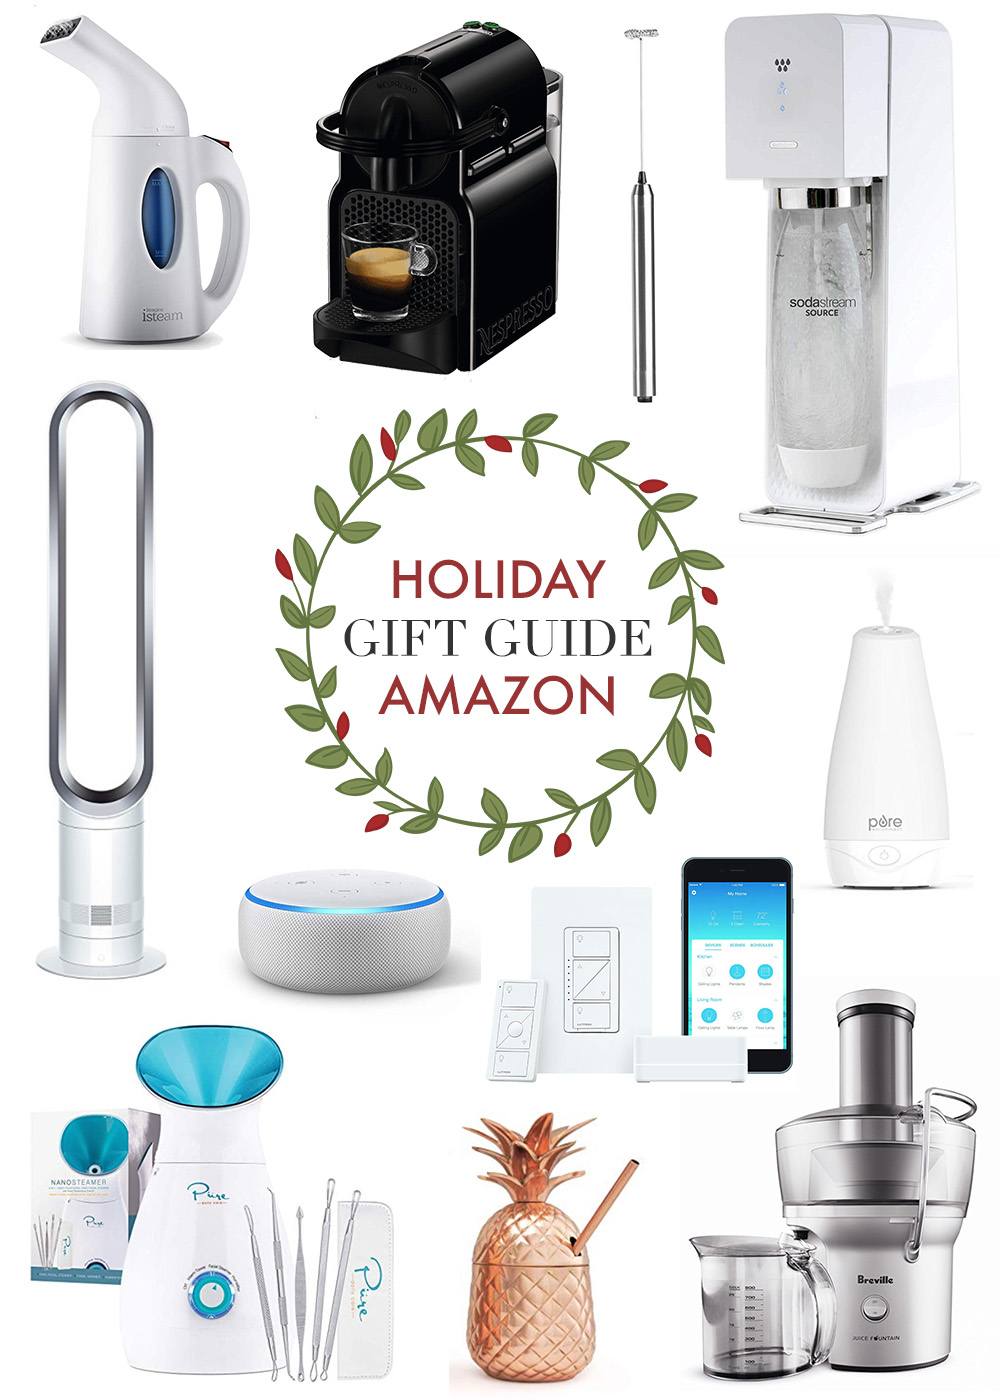 Christmas Gift Ideas from Amazon